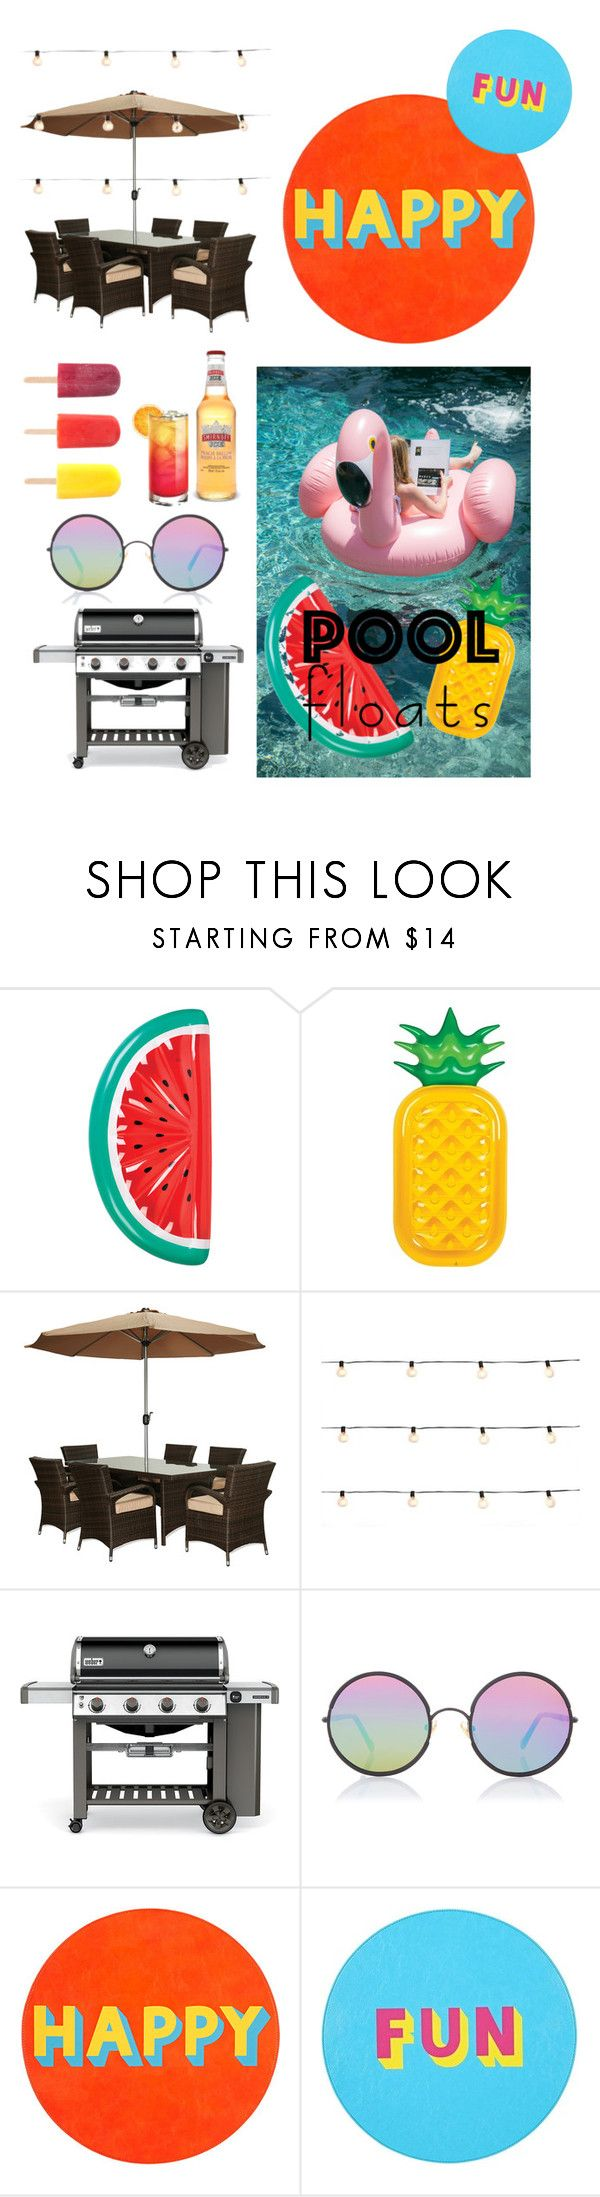 """Summmmaa"" by emelia-duarte ❤ liked on Polyvore featuring interior, interiors, interior design, home, home decor, interior decorating, Sunnylife, Été Swim, Bellini and International"